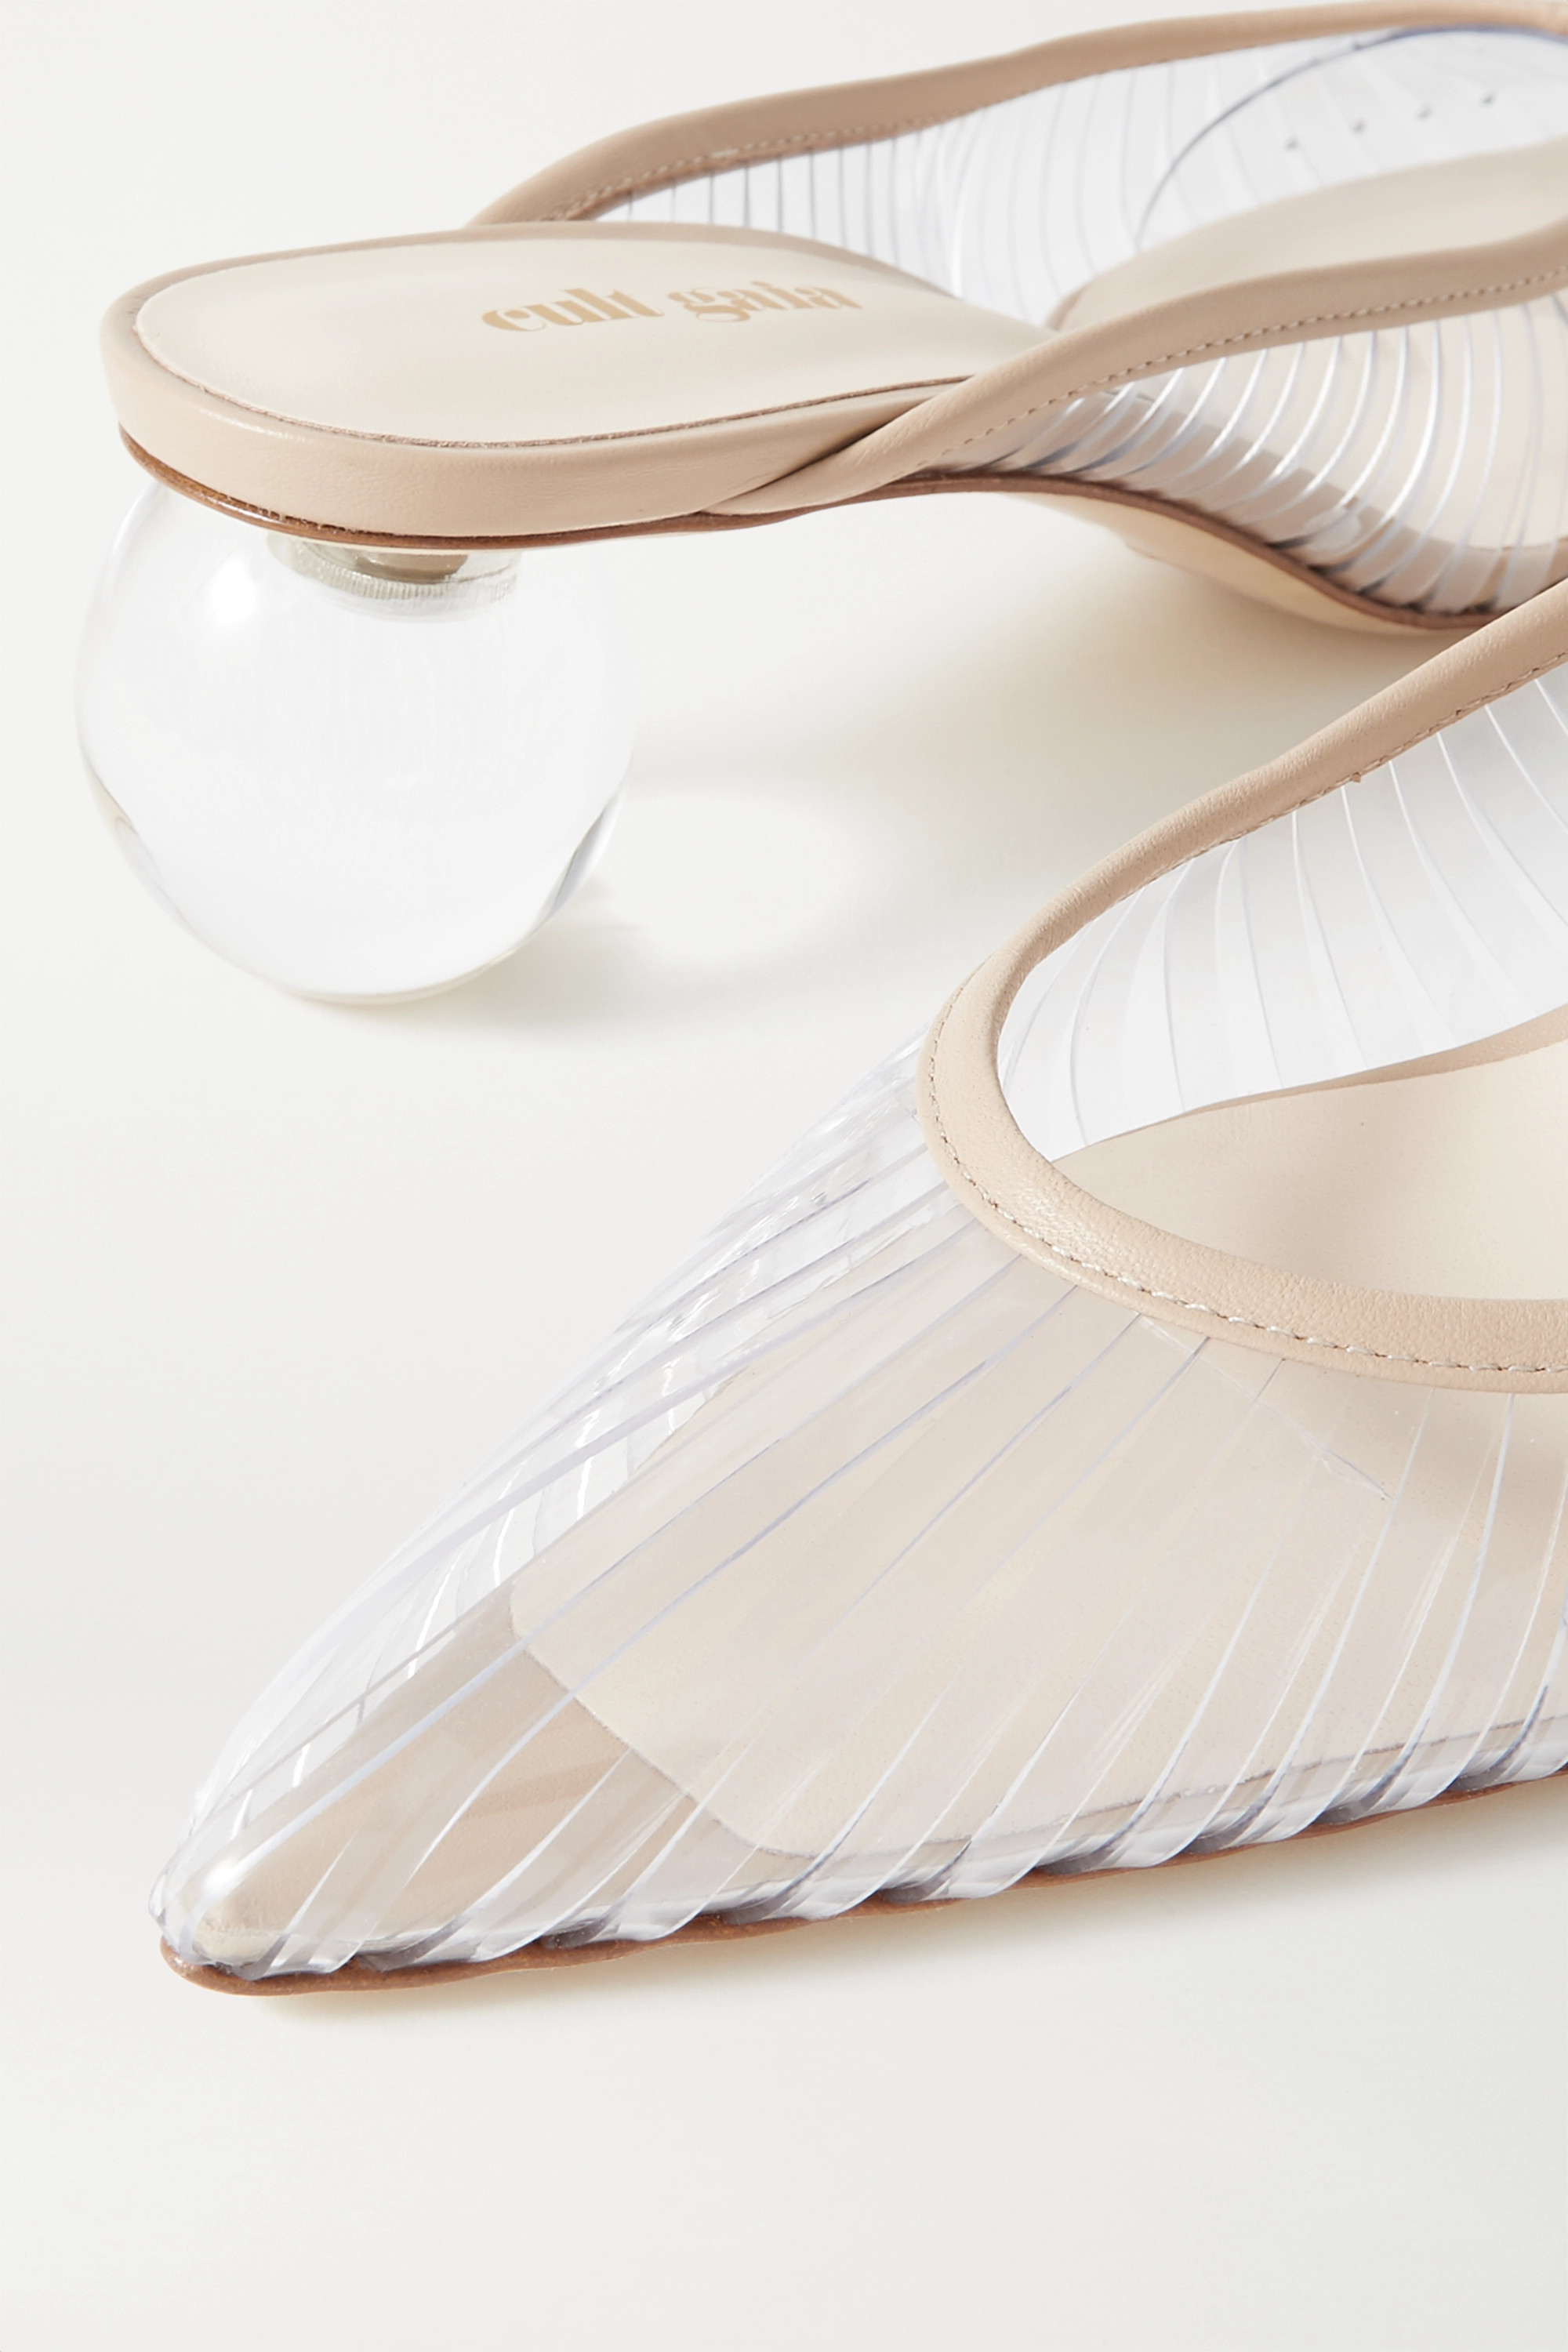 Cult Gaia Alia Perspex and leather mules